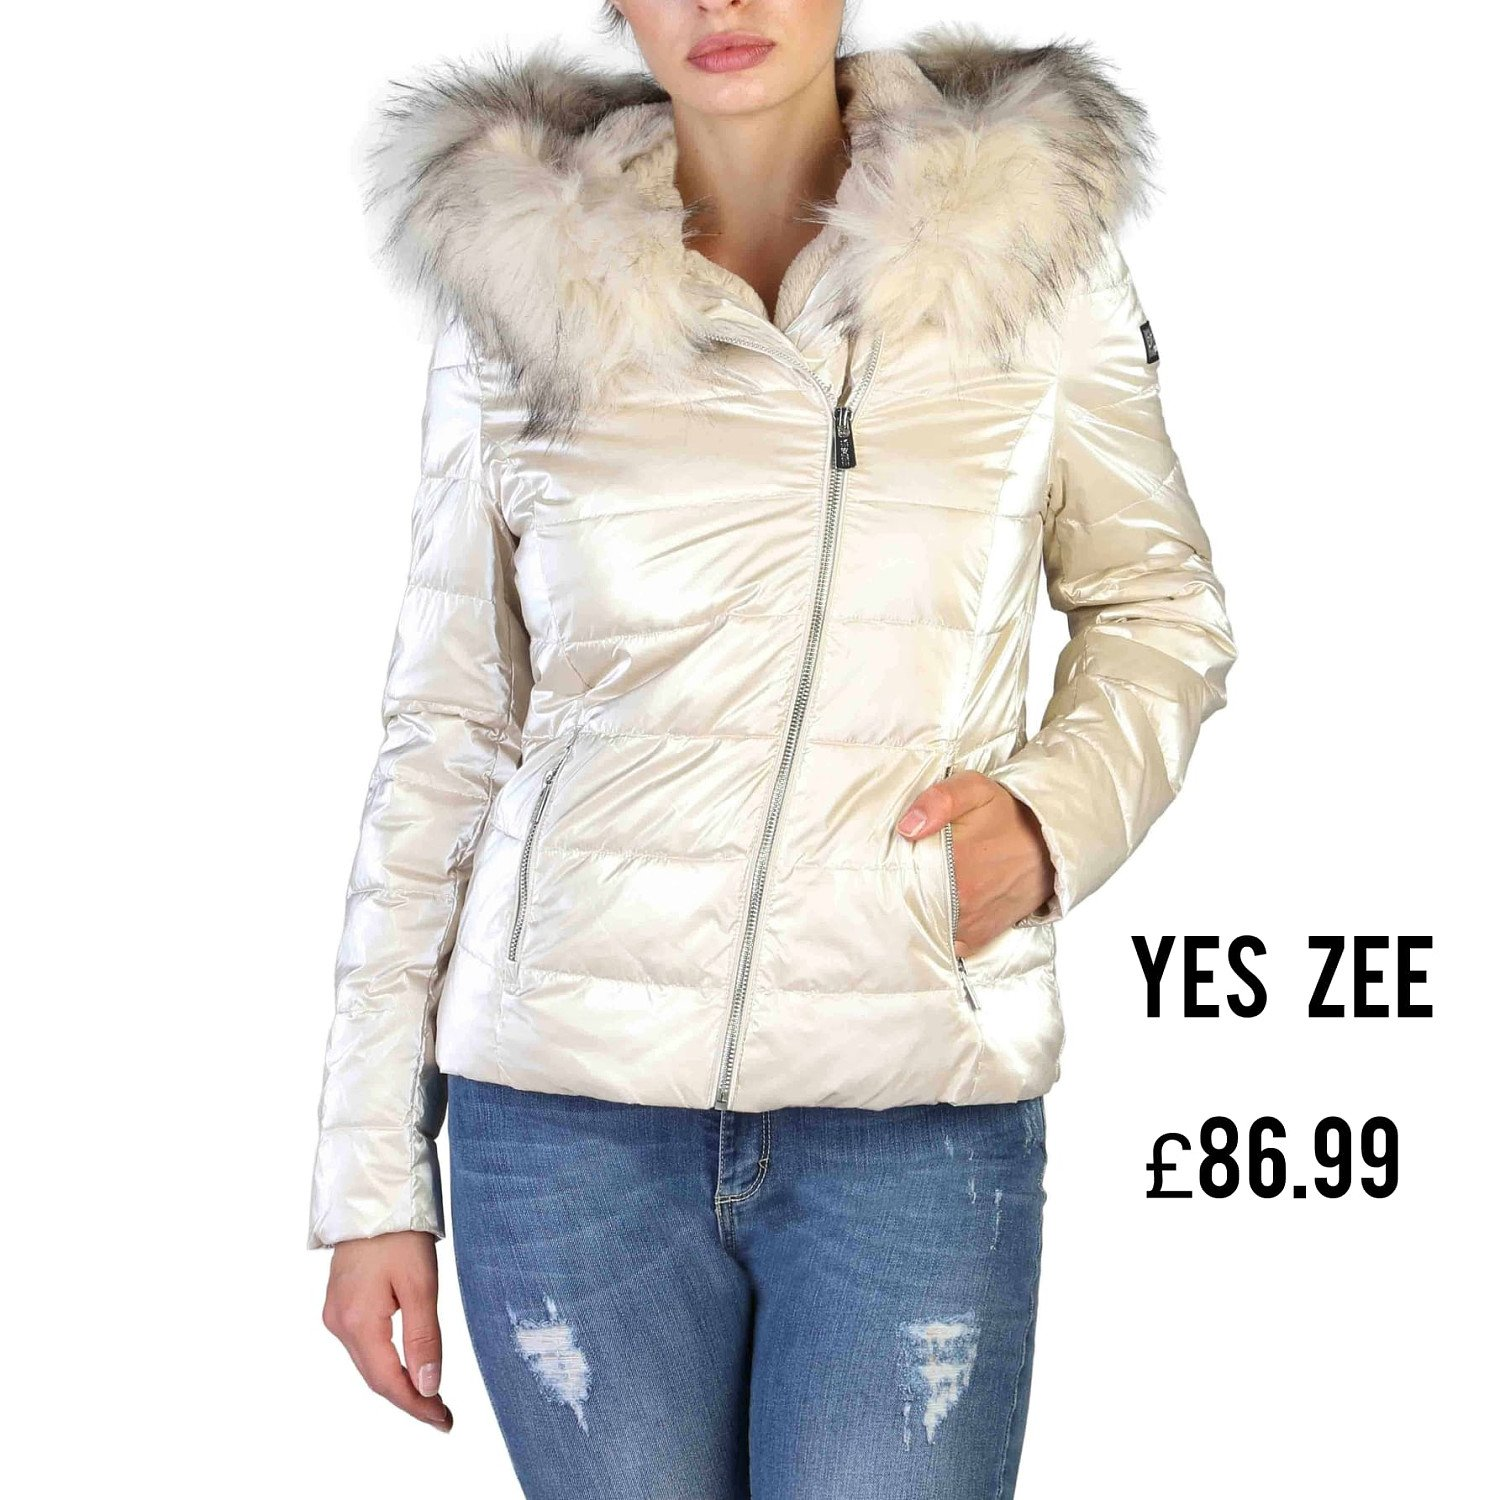 Save Additional 20% and Free Delivery on This Stylish YES ZEE Ladies Jackets £86.99